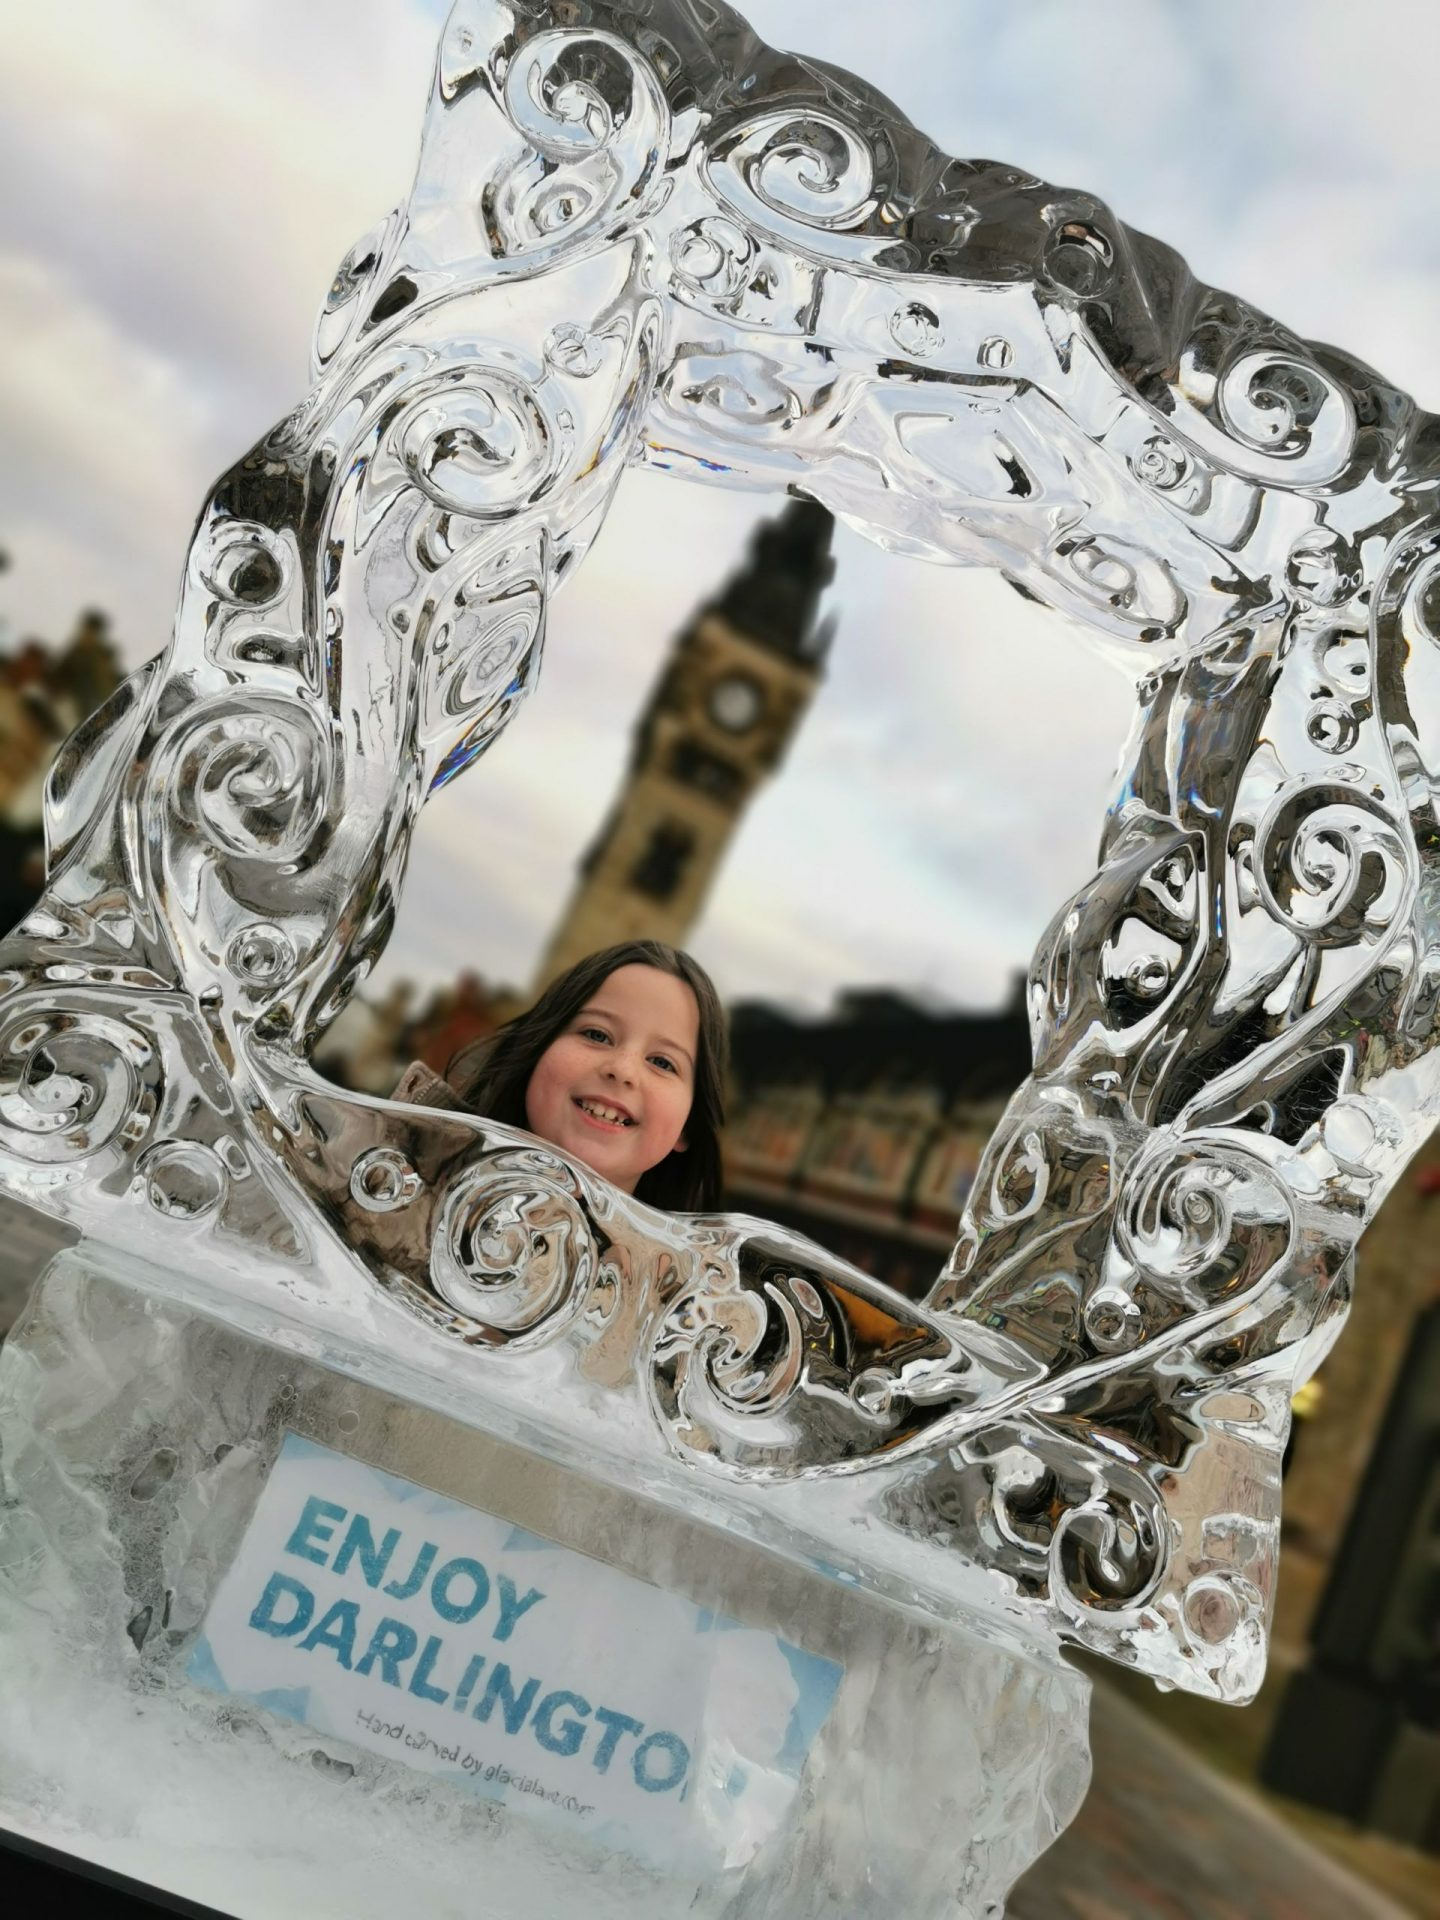 Darlington's Ice Trail 2019